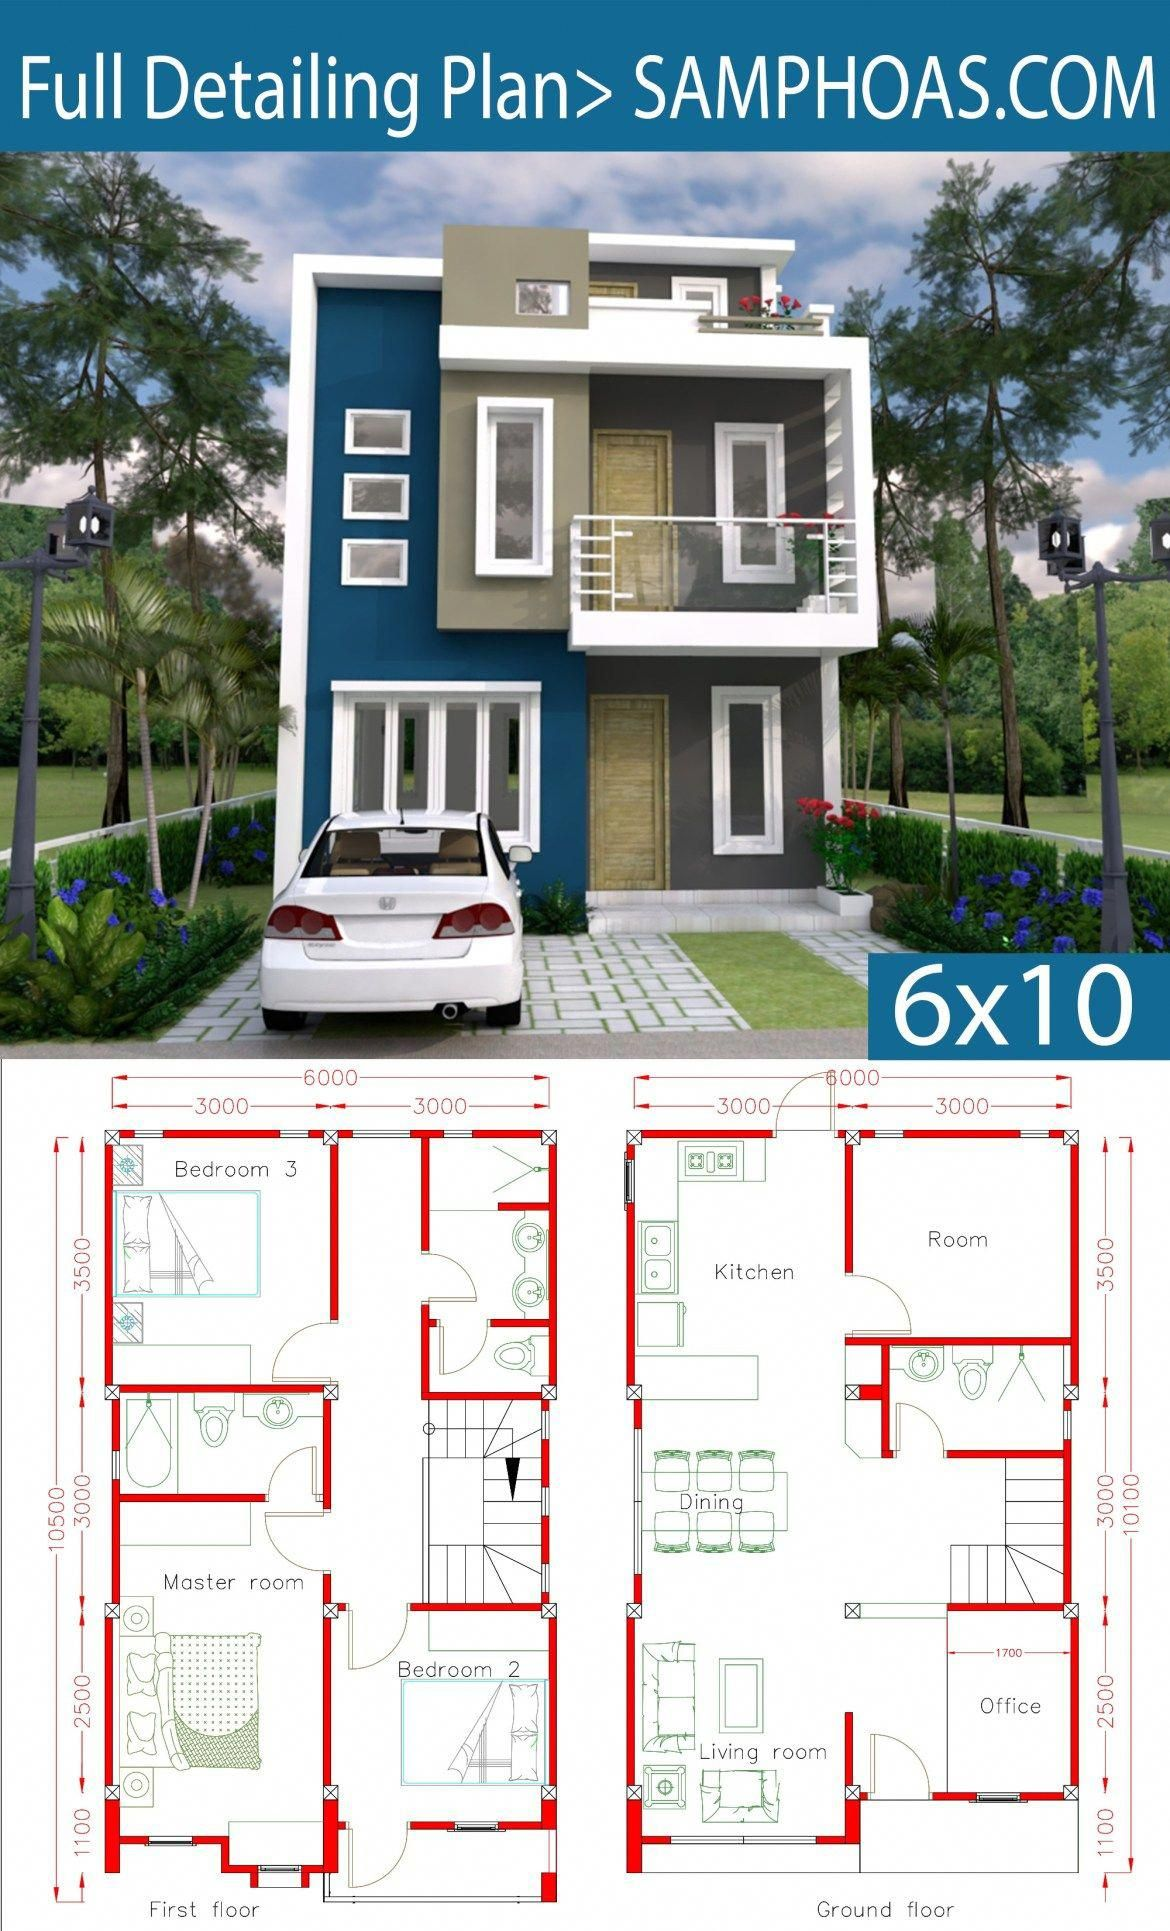 Sketchup Home Design Plan 6x10m With 4 Rooms Samphoas Plansearch Modernhomedesign Architectural House Plans Model House Plan House Layout Plans